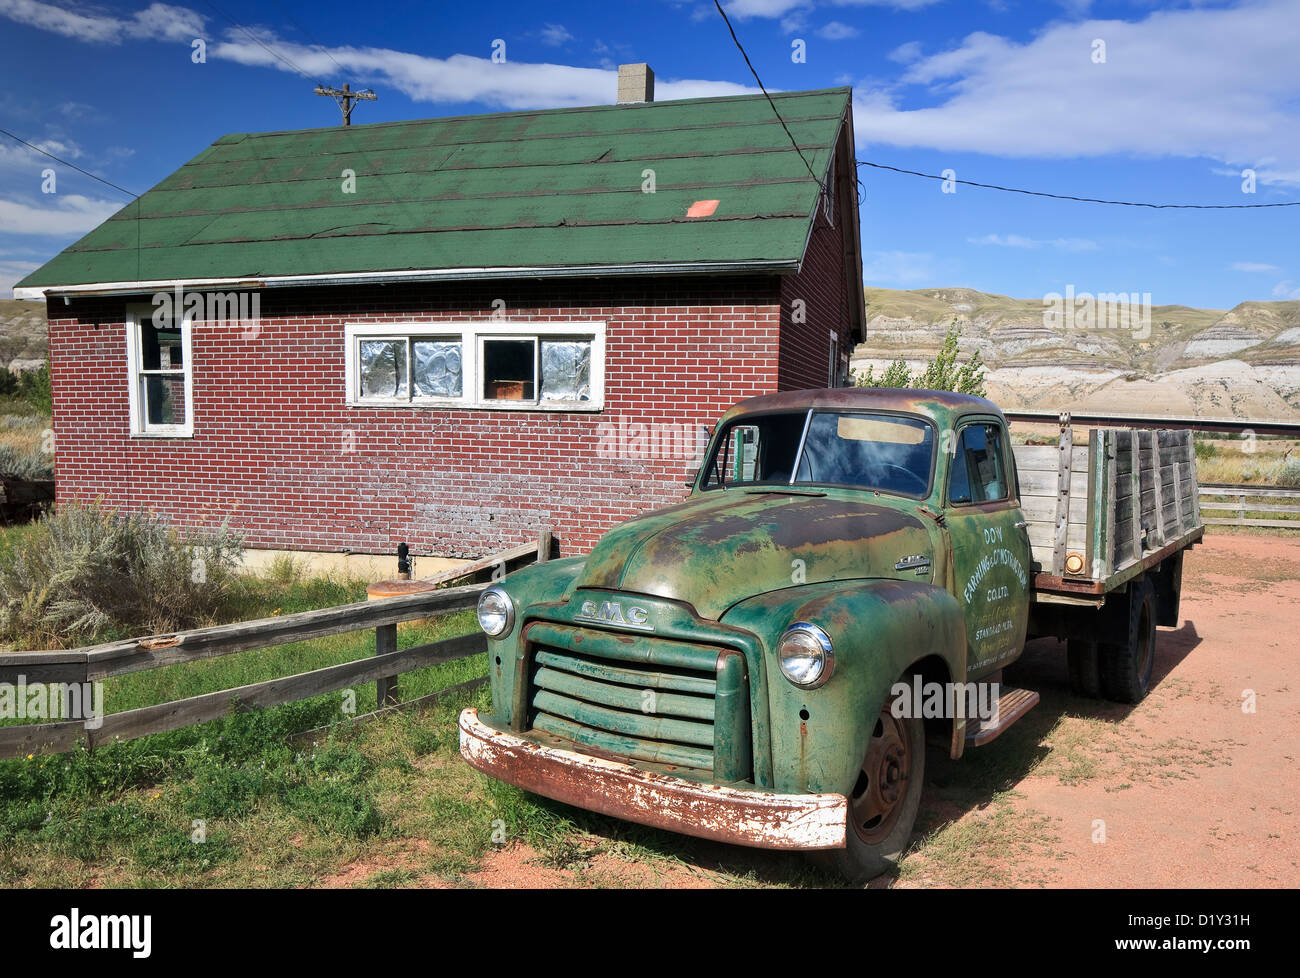 Old pickup truck, Atlas Coal Mine National Historic Site, East Coulee, Alberta, Canada - Stock Image